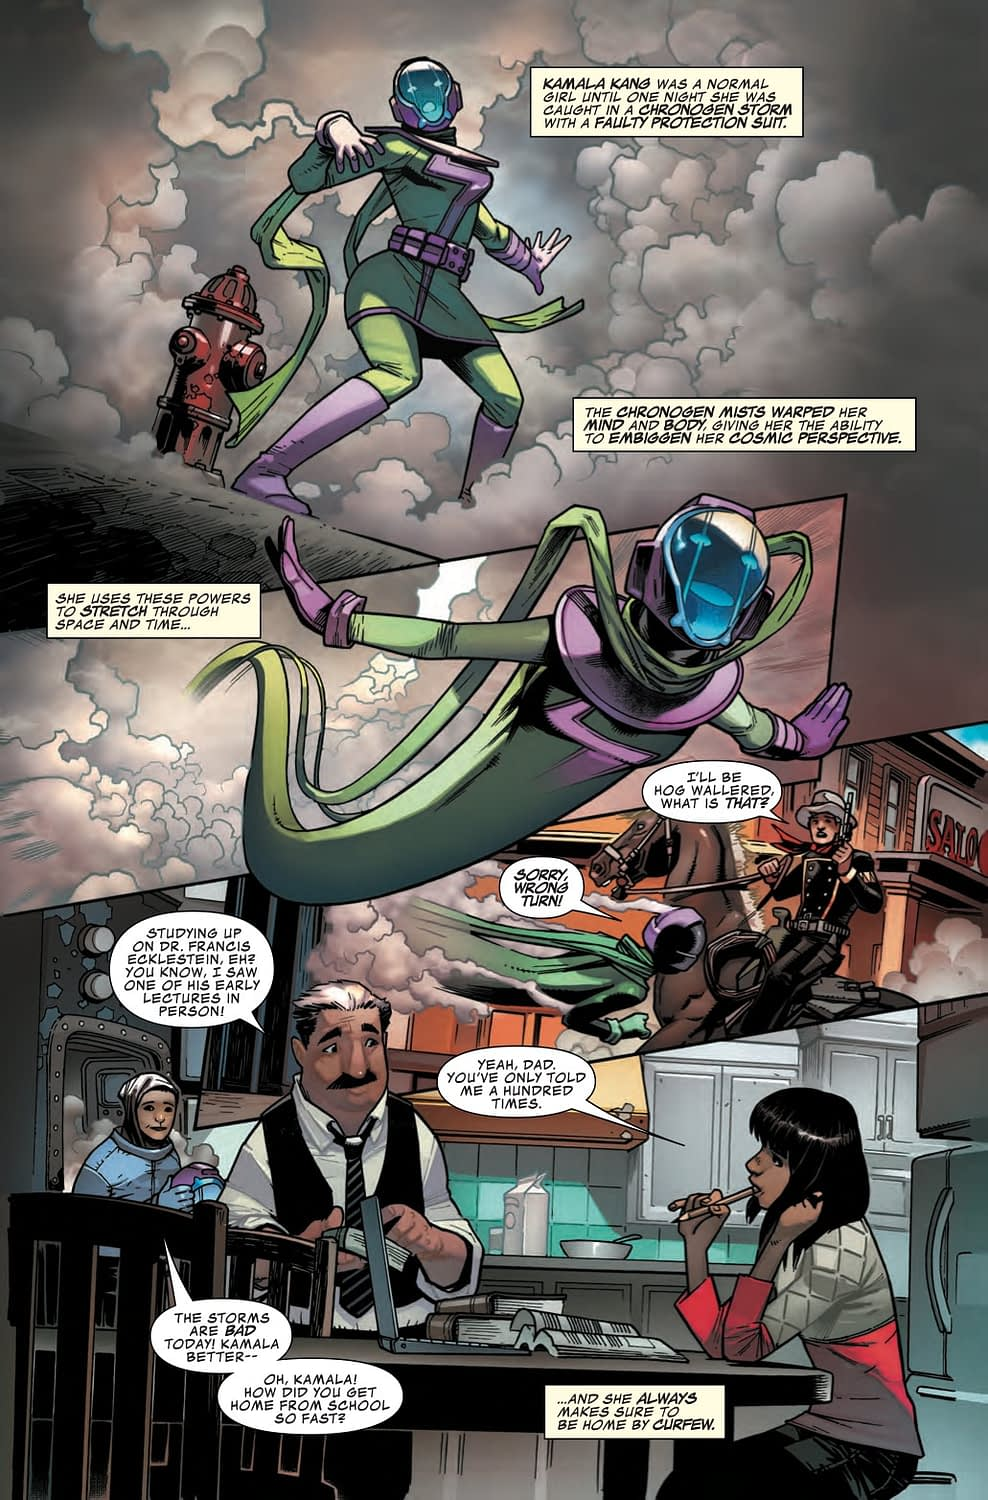 Kamala Kang Makes a Classic Time Travel Mistake in Next